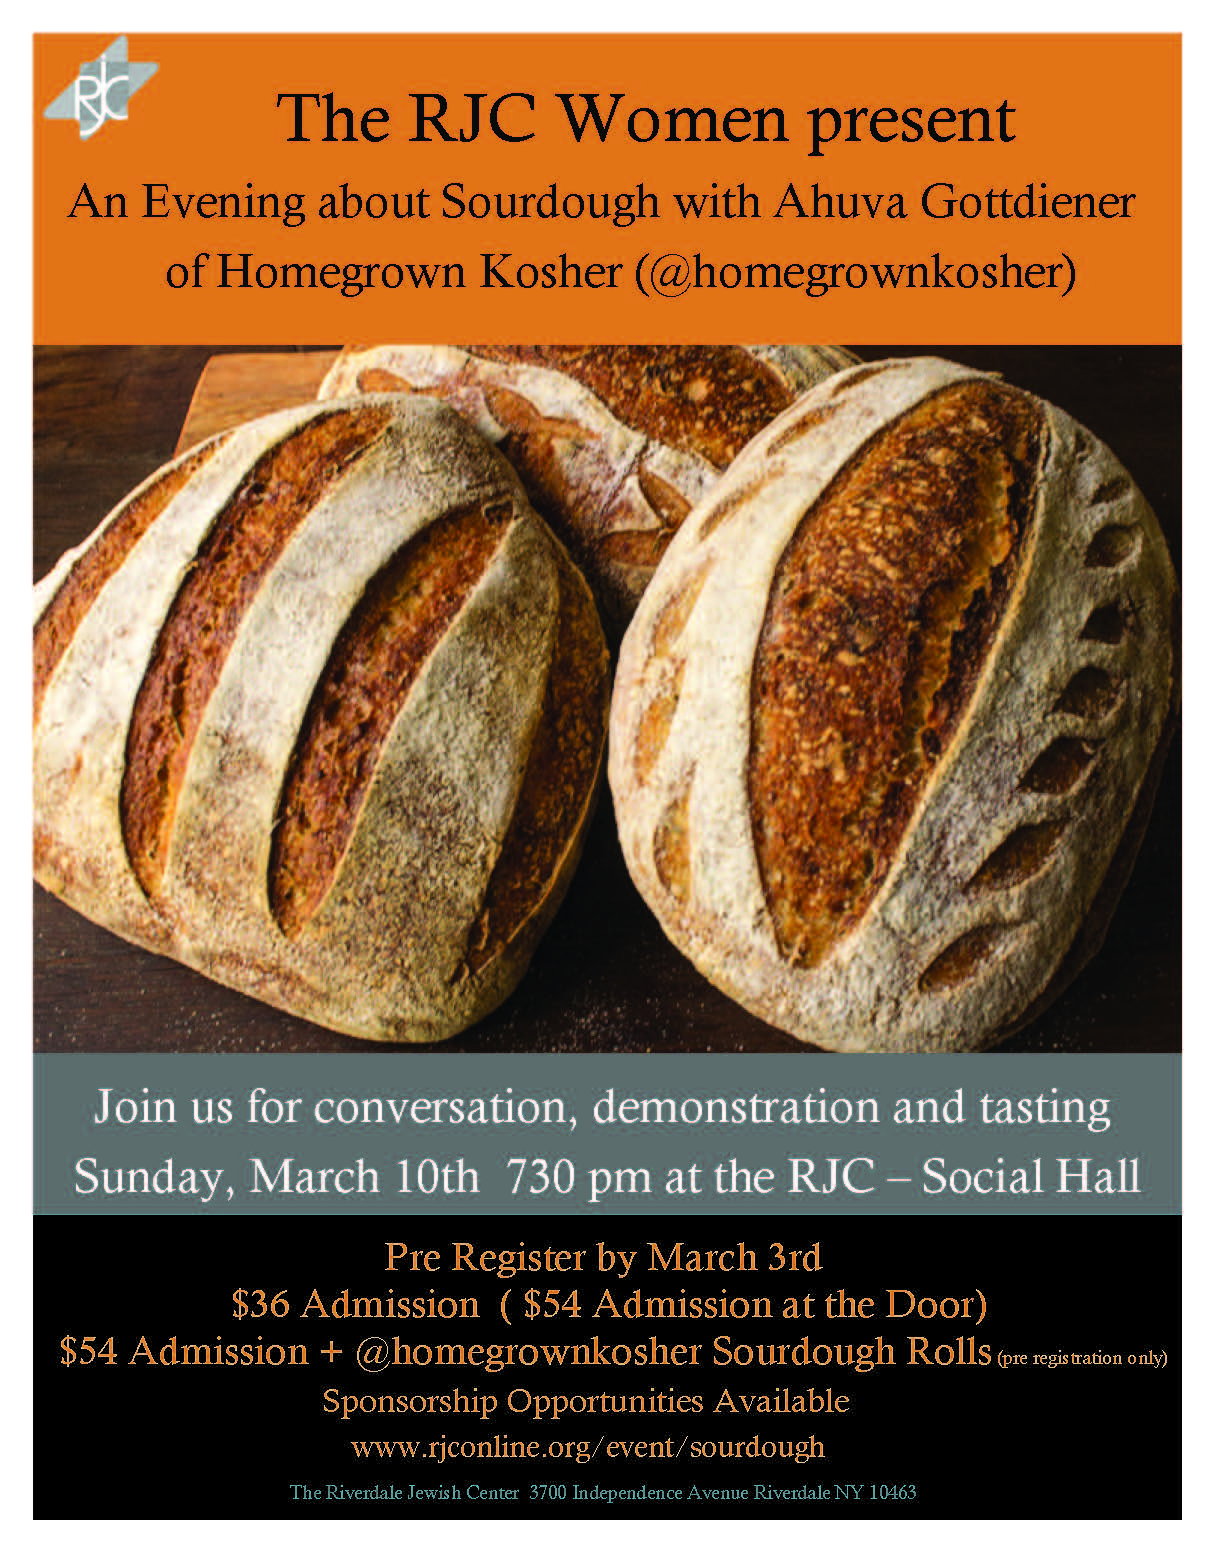 Banner Image for RJC Women Sourdough event with Ahuva Gottdiener